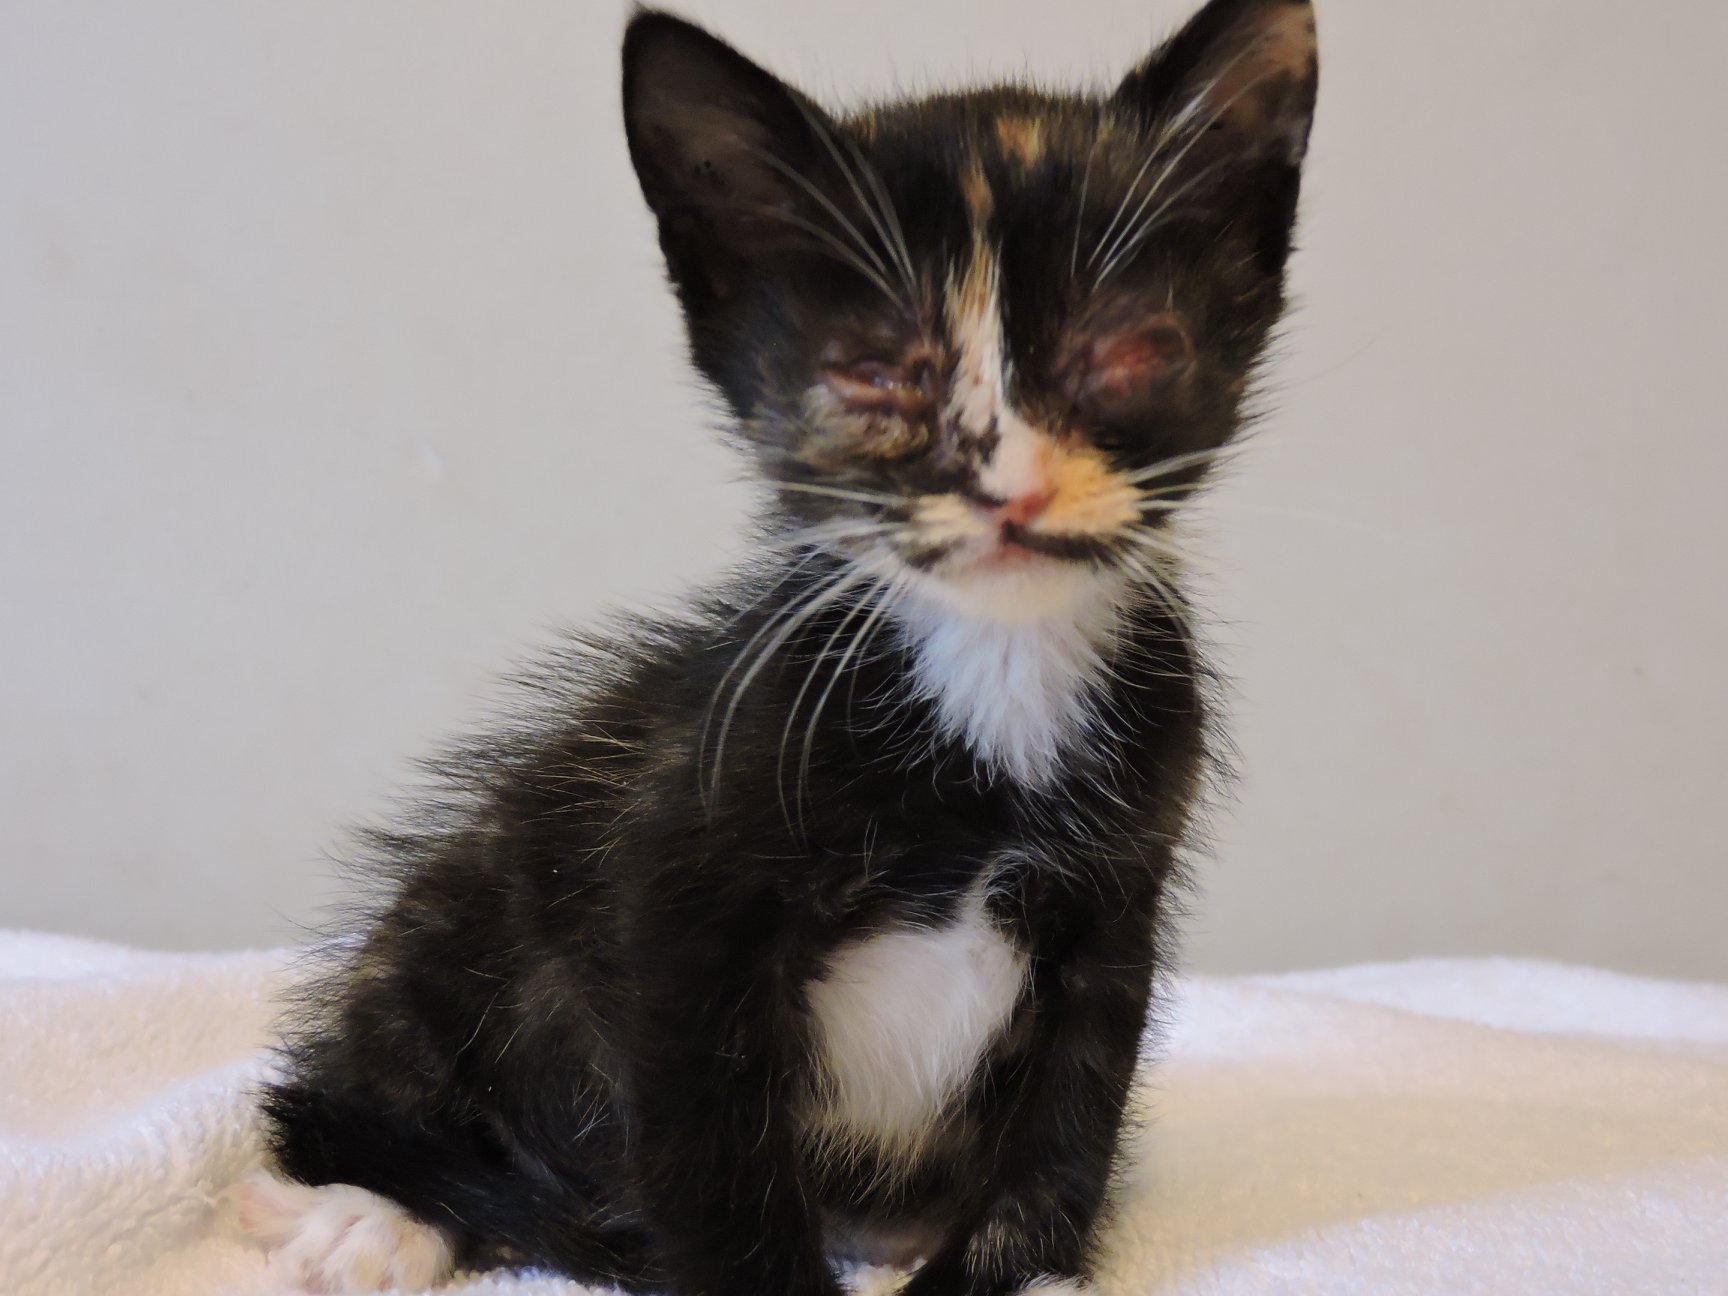 6 kittens who were abandoned in the rain need our help!